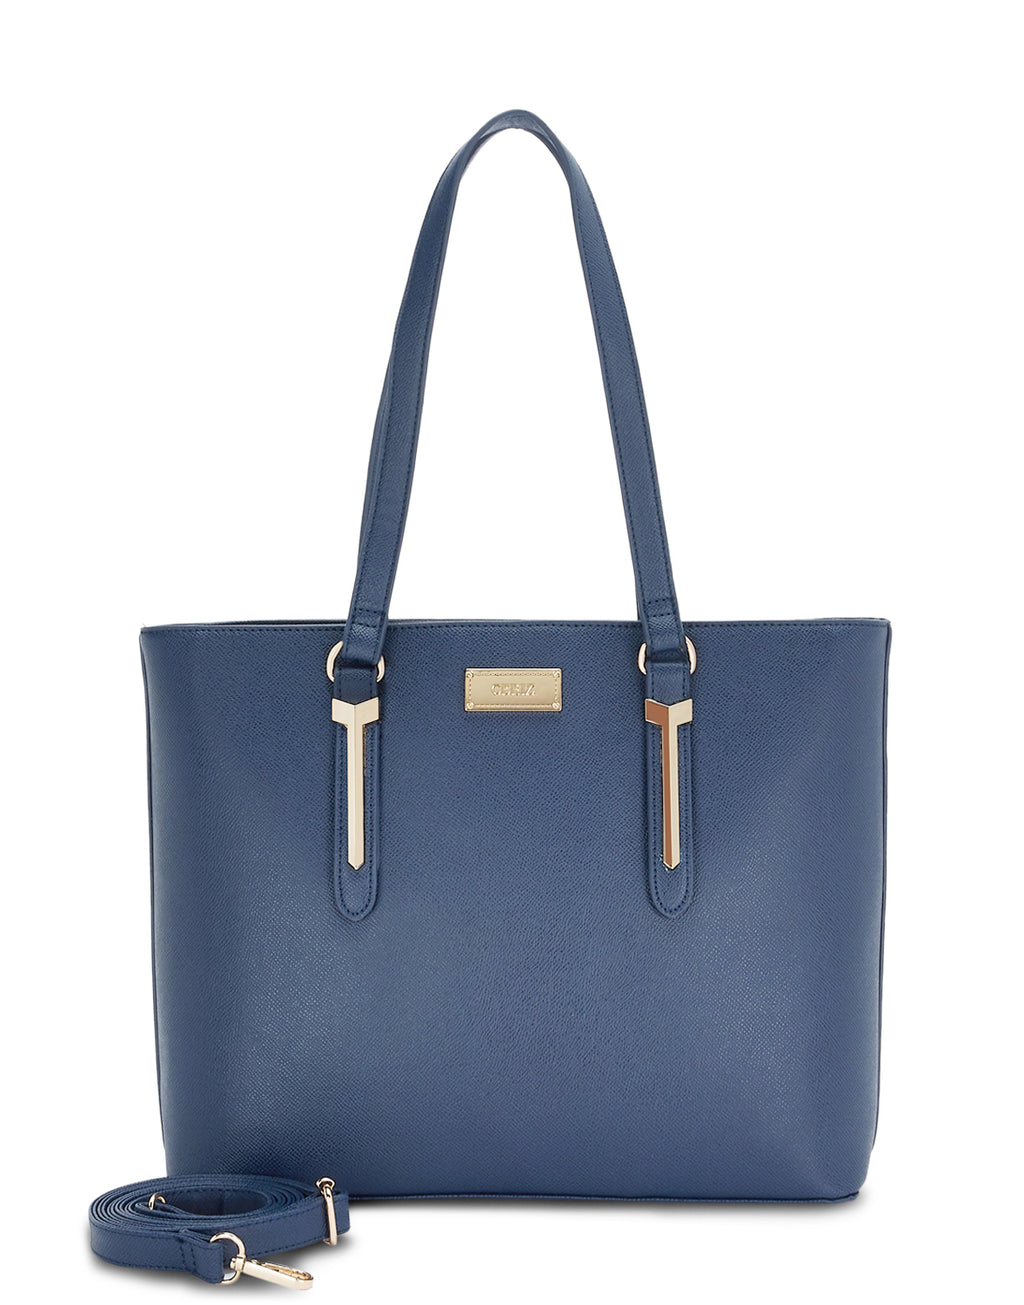 Fabienne Textured Navy Tote